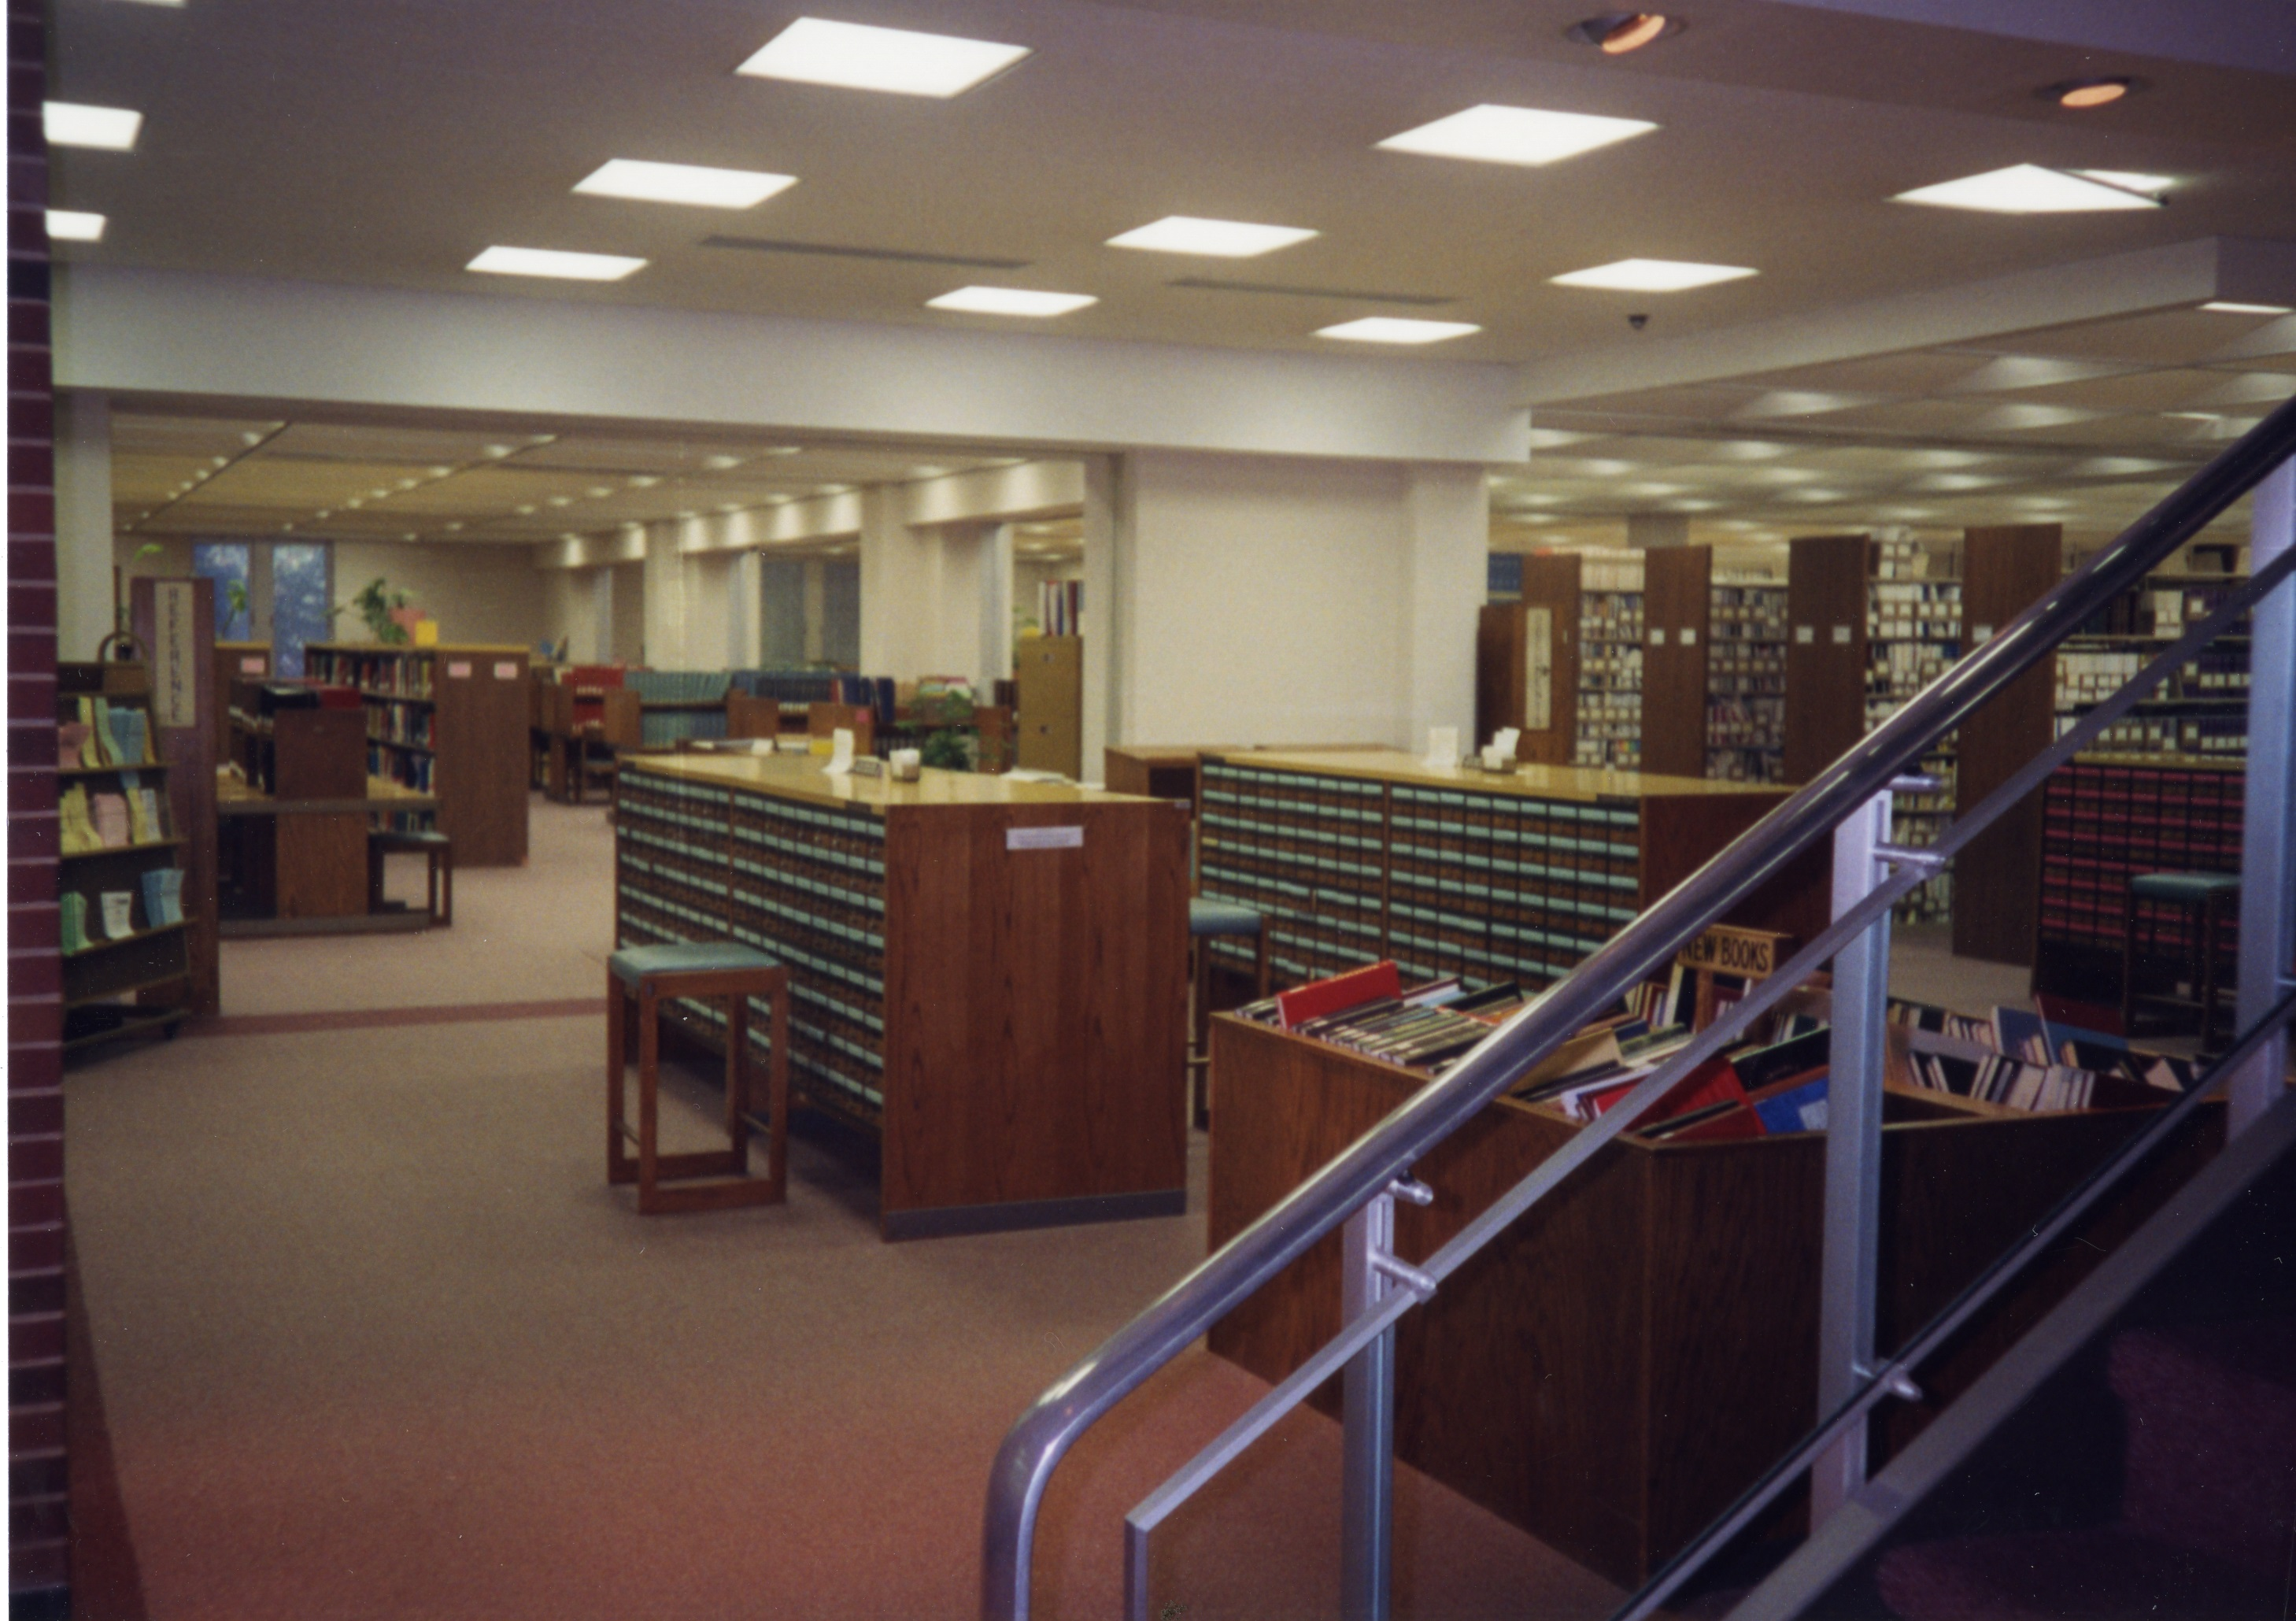 Blackwell Library Interior and Card Catalog, 1994